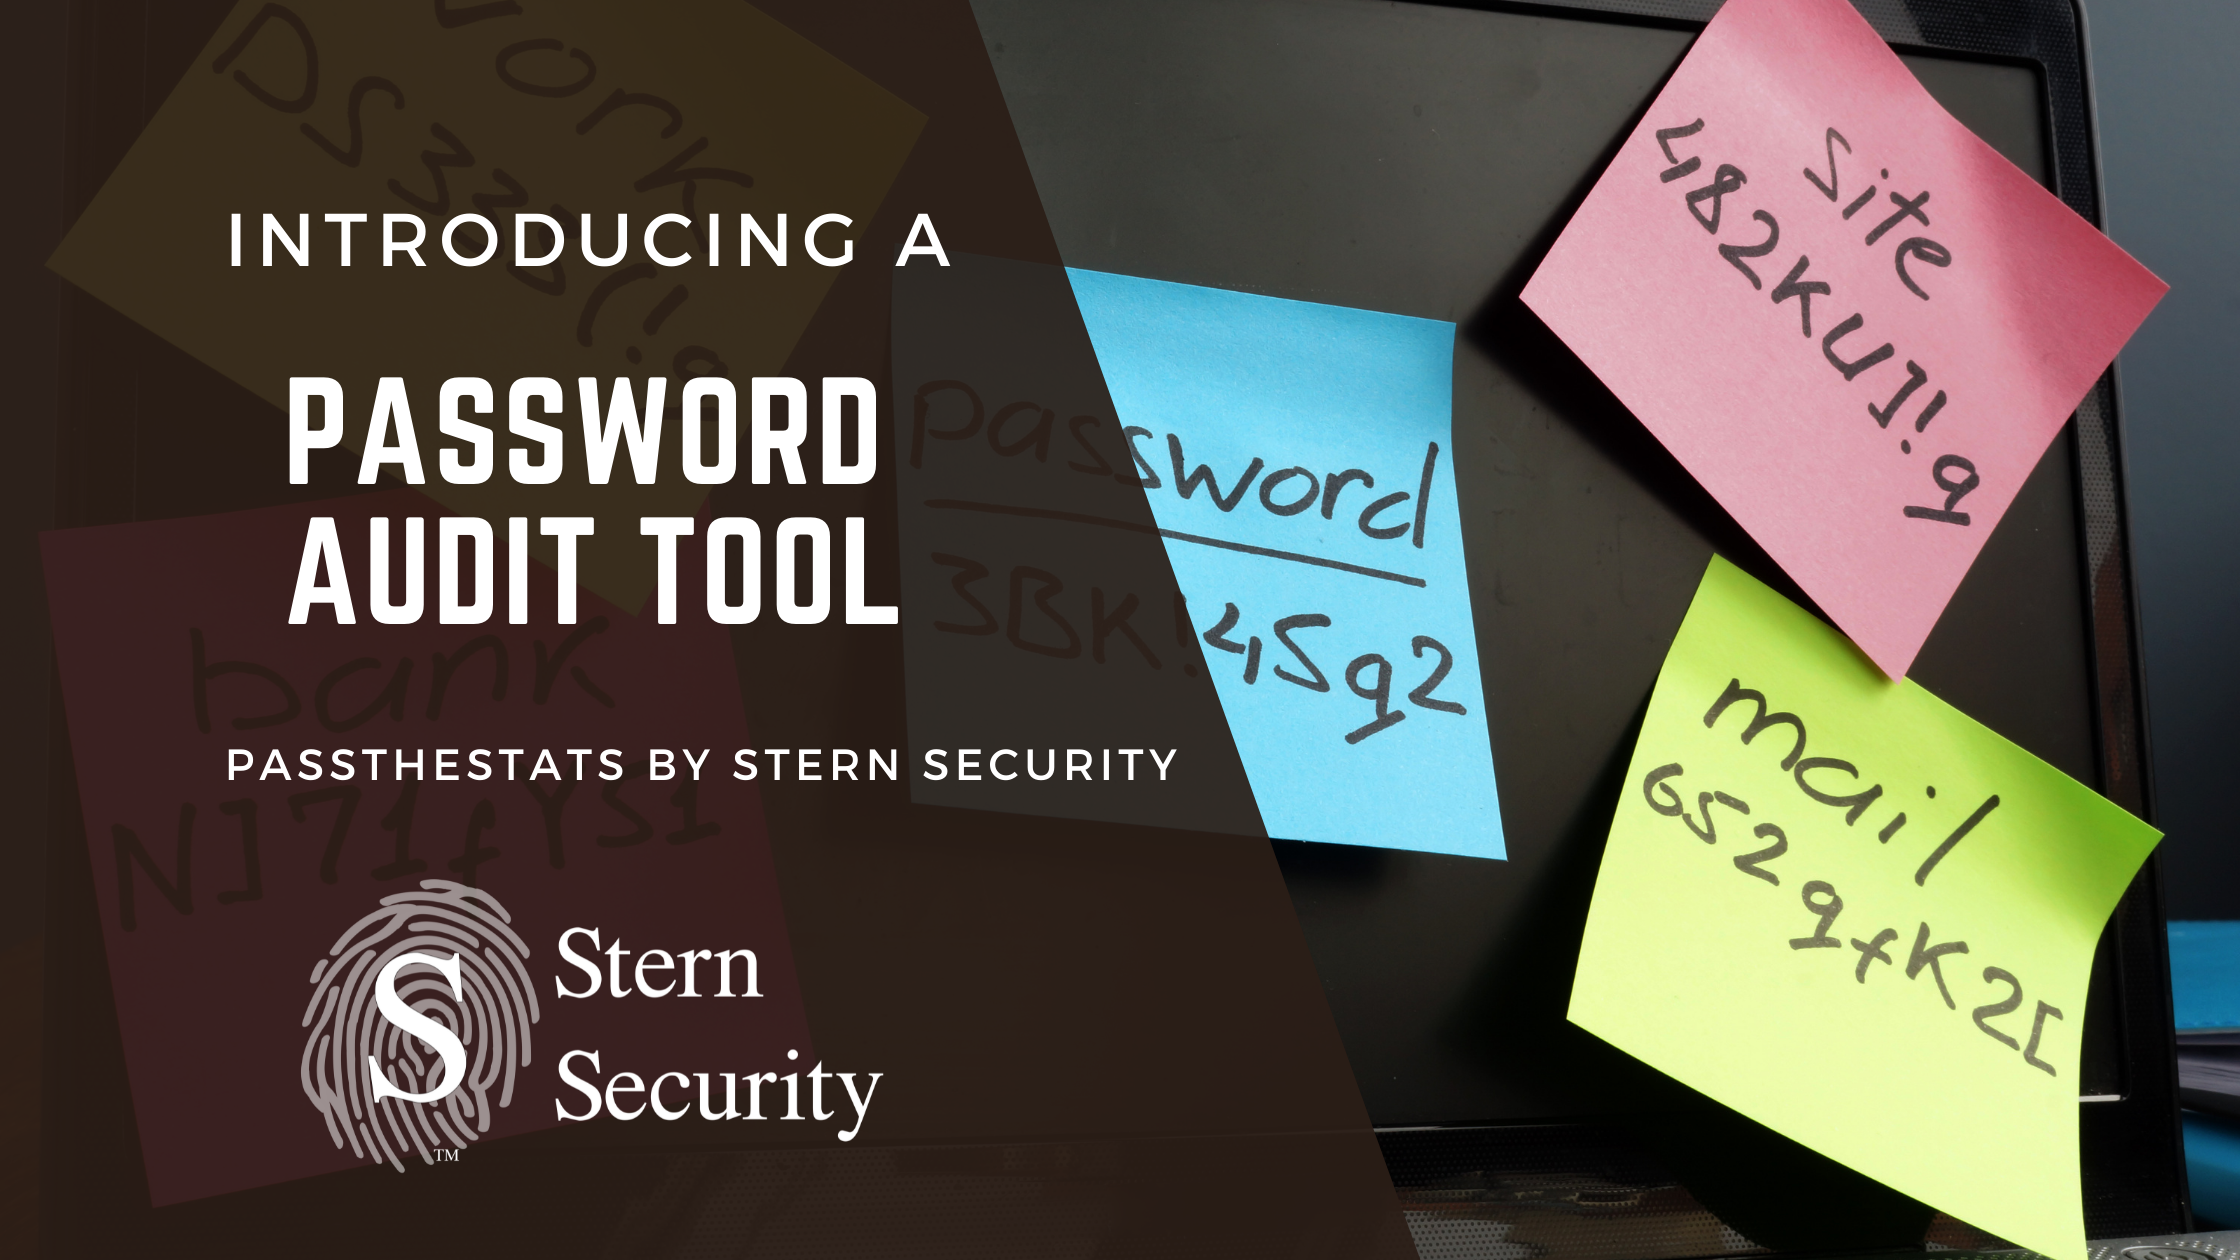 A password auditing tool by Stern Security